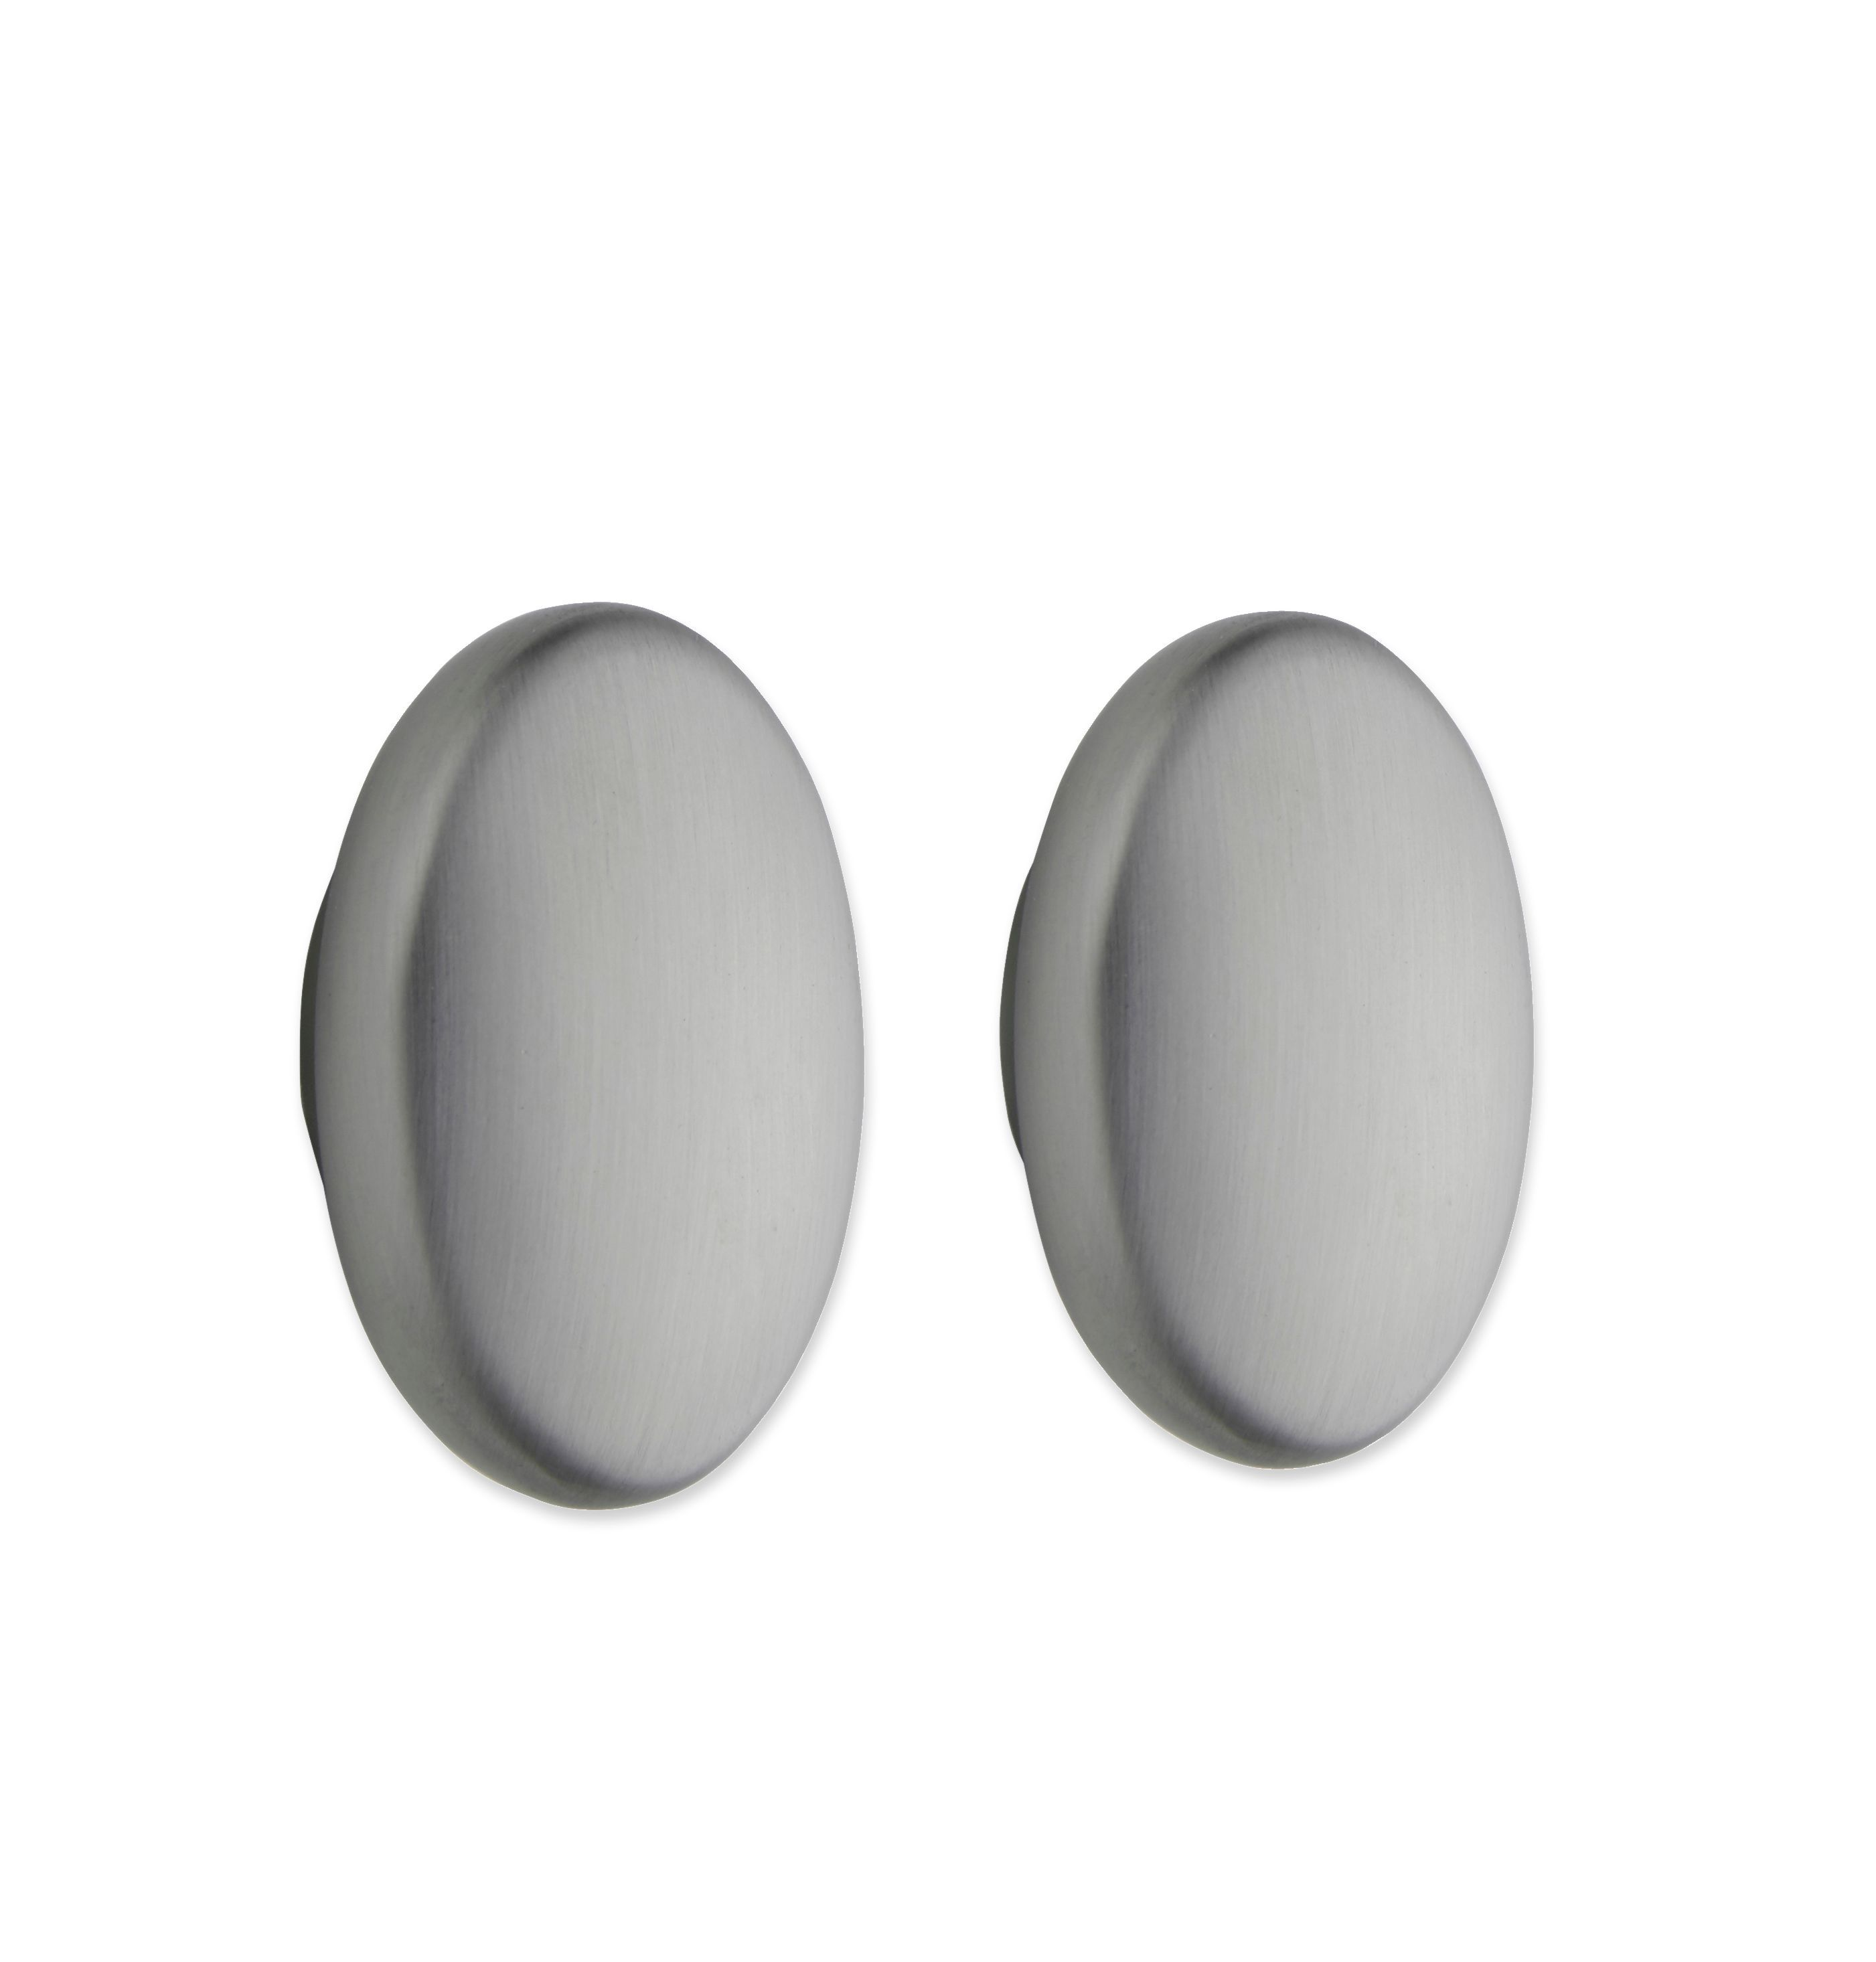 Cooke & Lewis Stainless Steel Effect Oval Oval Cabinet Knob, Pack Of 1